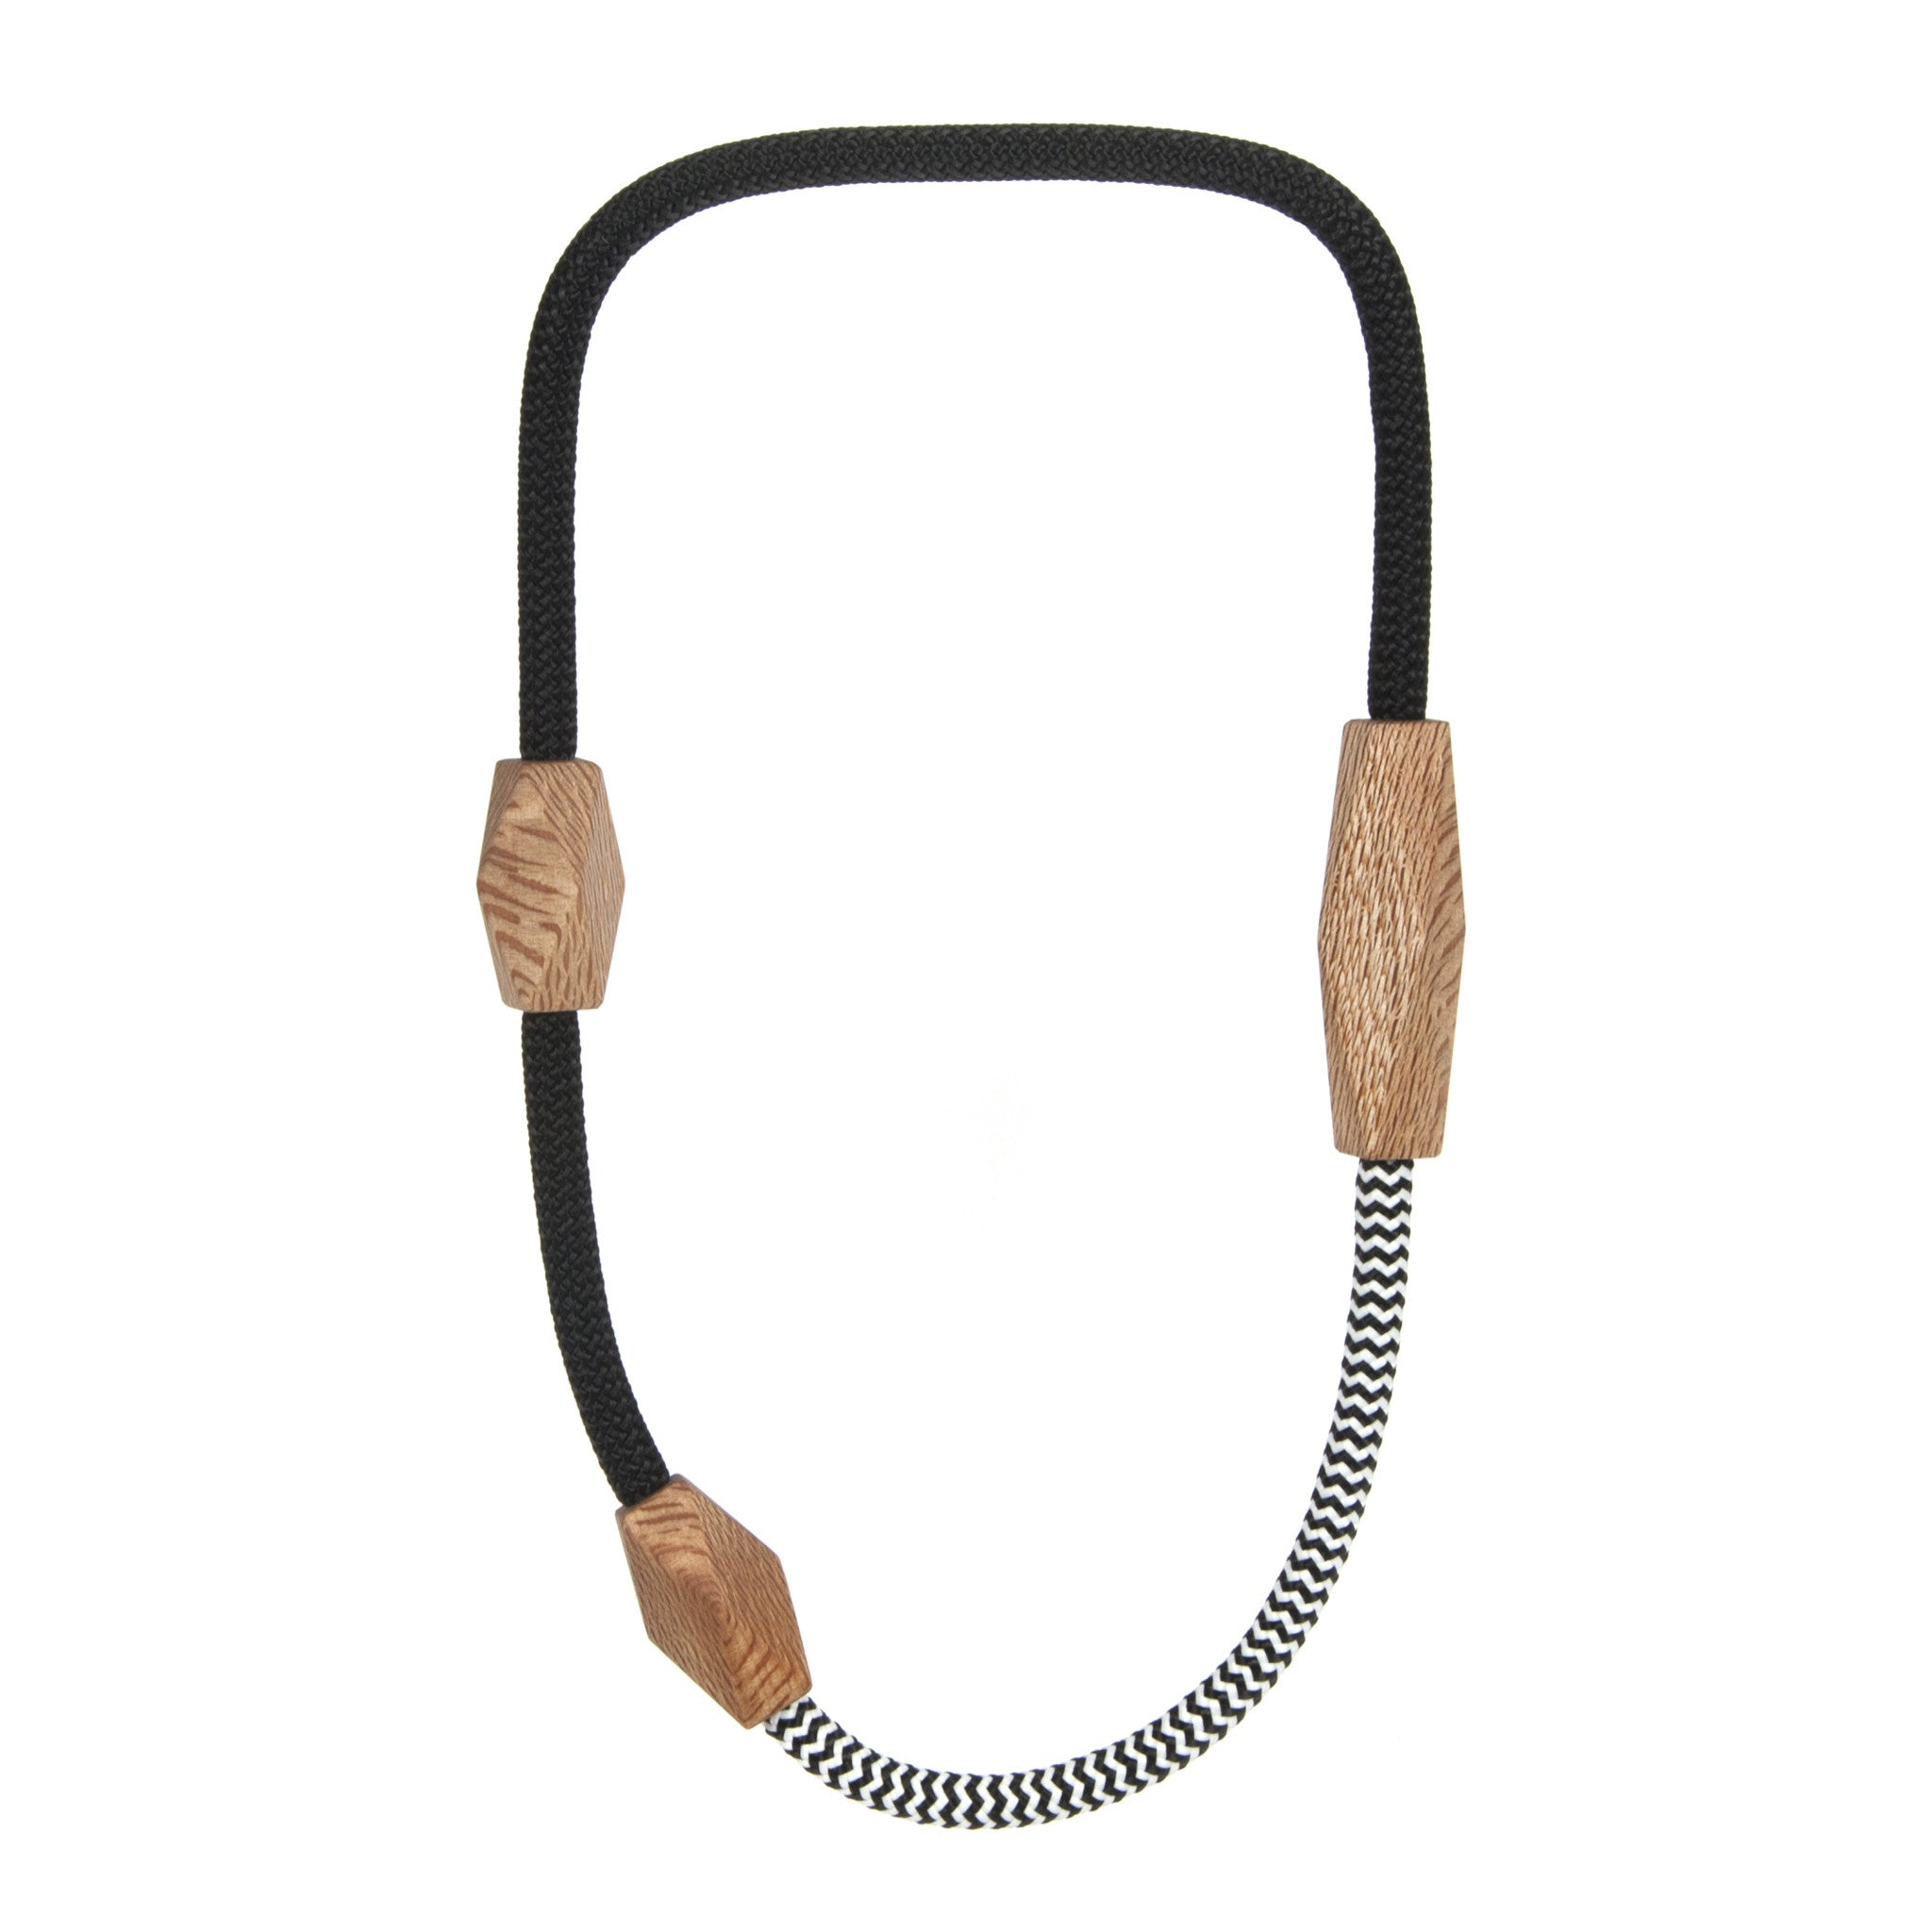 Rewarewa Necklace Image